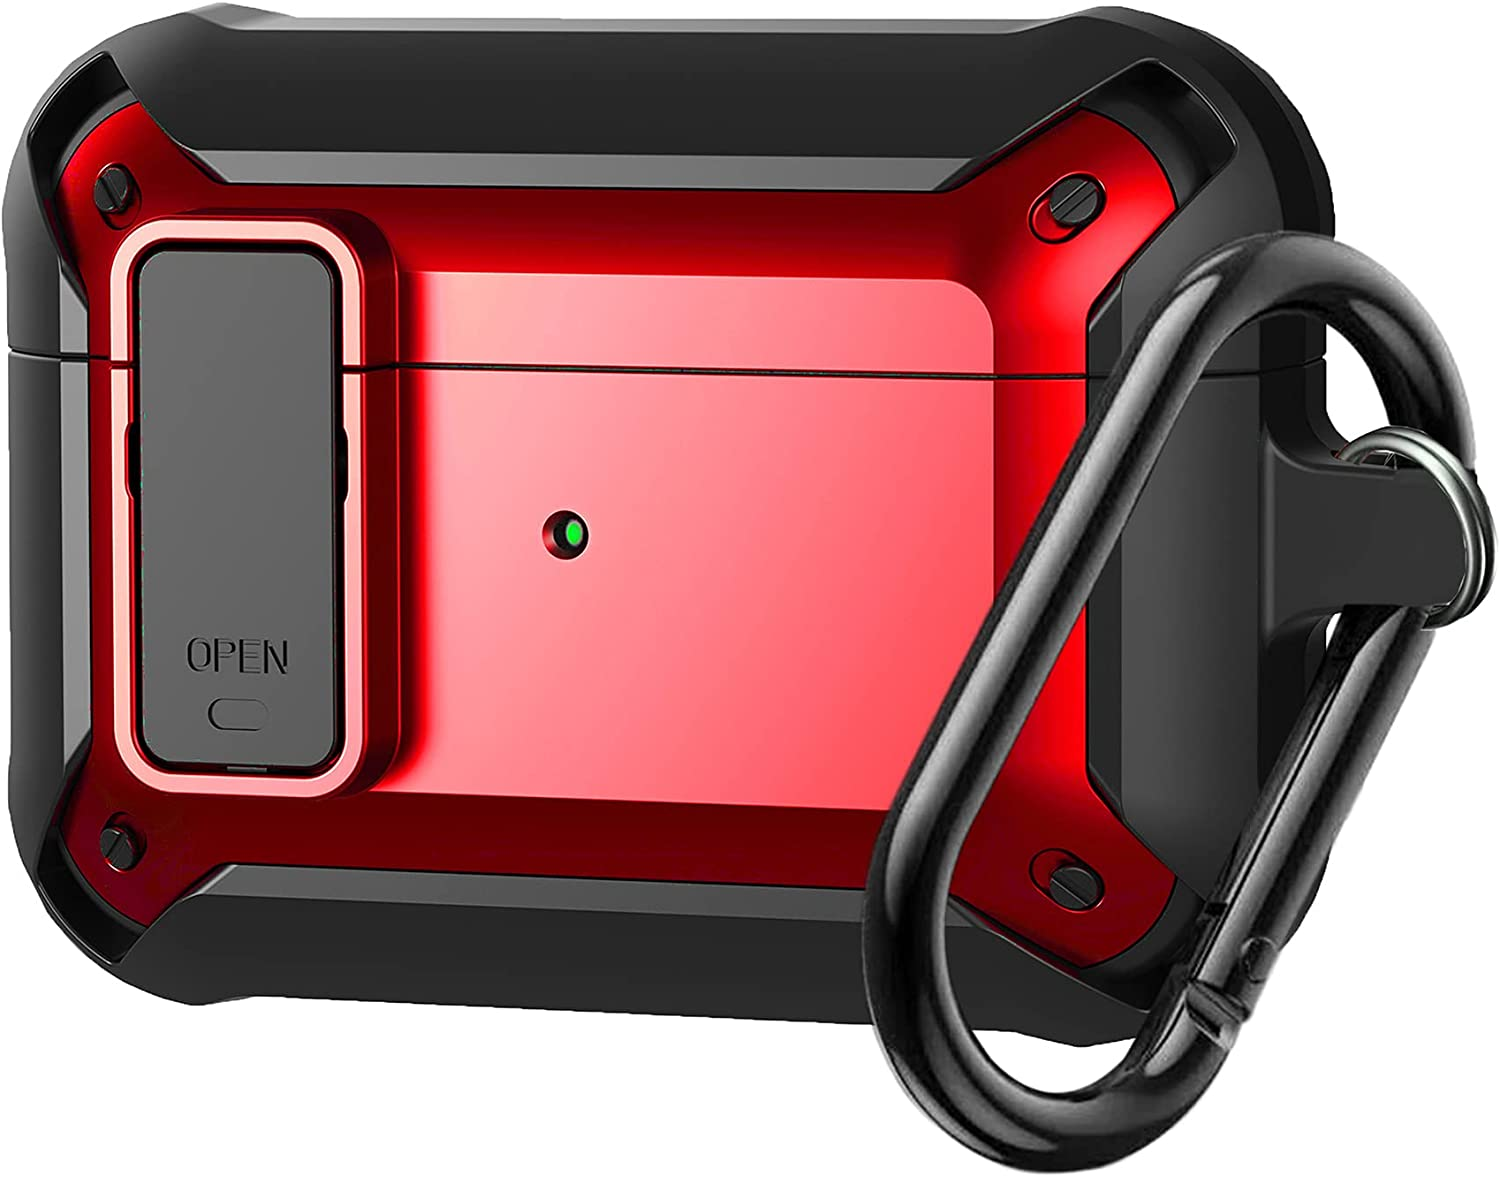 Airpods Pro Case Cover, Olytop [Secure Lock] Armor Full-Body Rugged Air Pods Pro Case Protective Cover Skin Shockproof Men Women with Keychain for Apple Airpods Pro Charging Case - Red